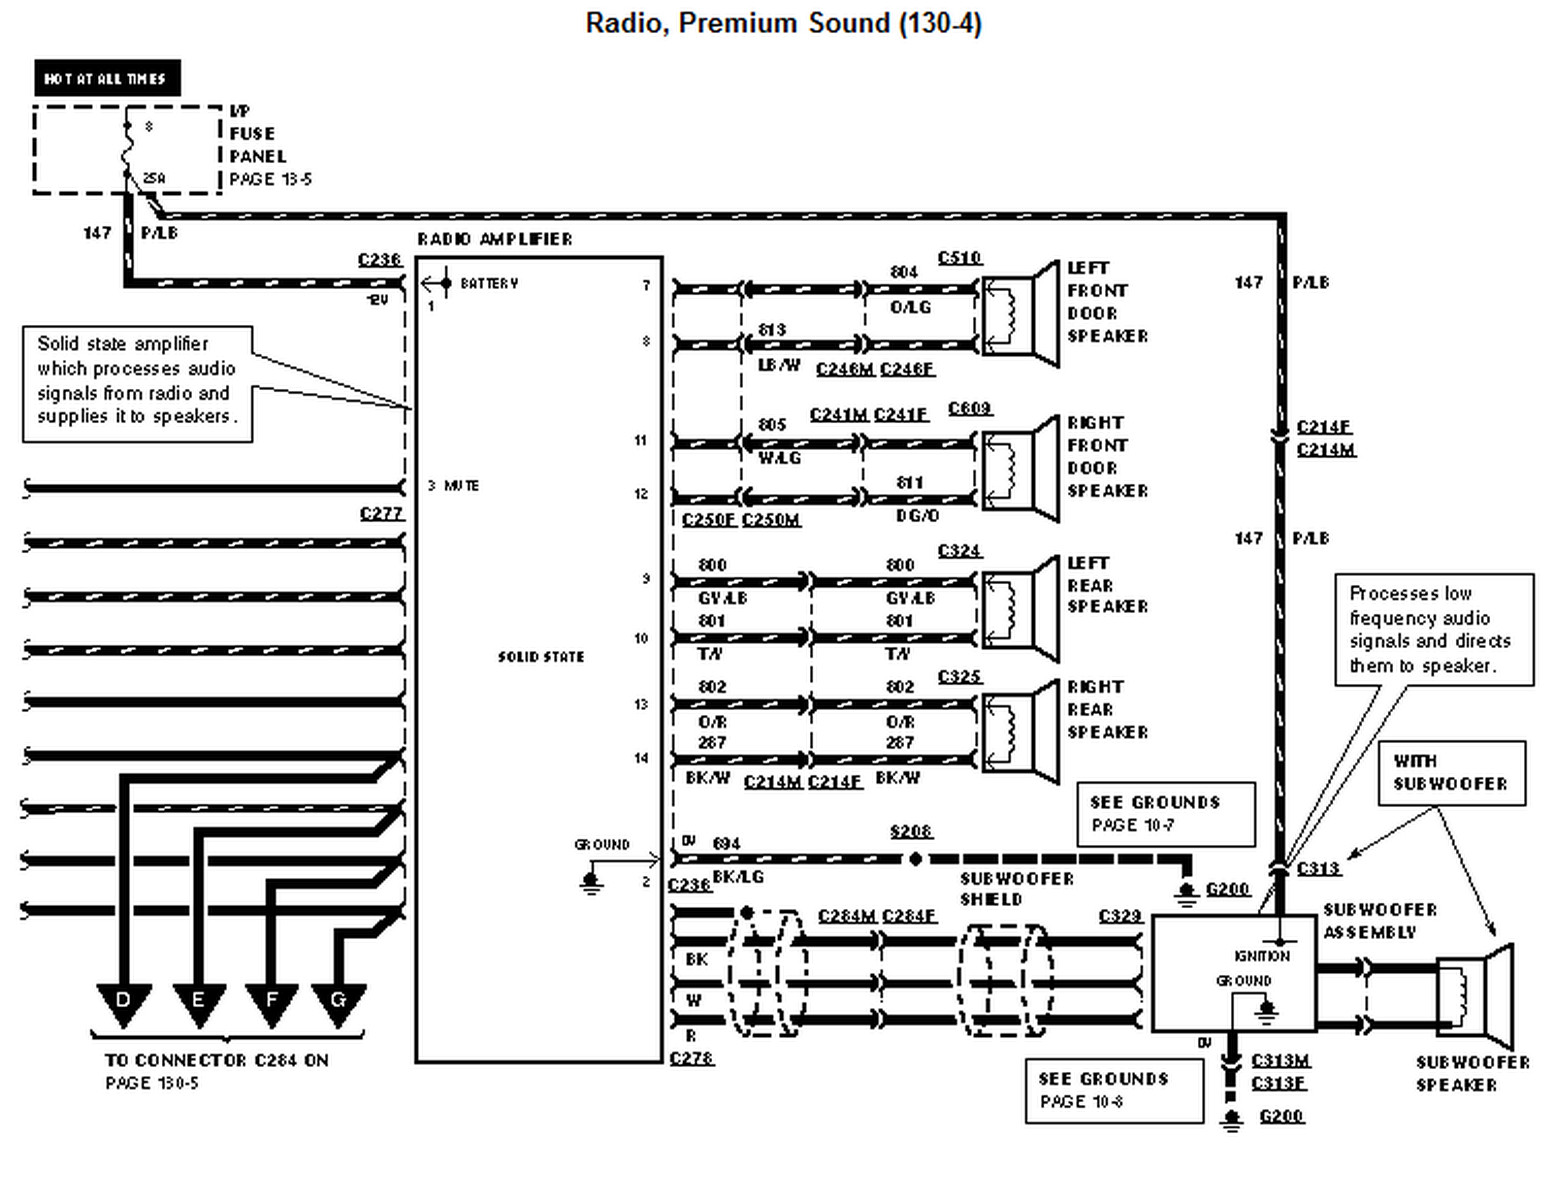 2010 03 13_005623_96_Windstar_radio_wiring_diagram4 jaguar radio wiring diagram jaguar wiring diagrams instruction GM Radio Wiring Diagram at edmiracle.co